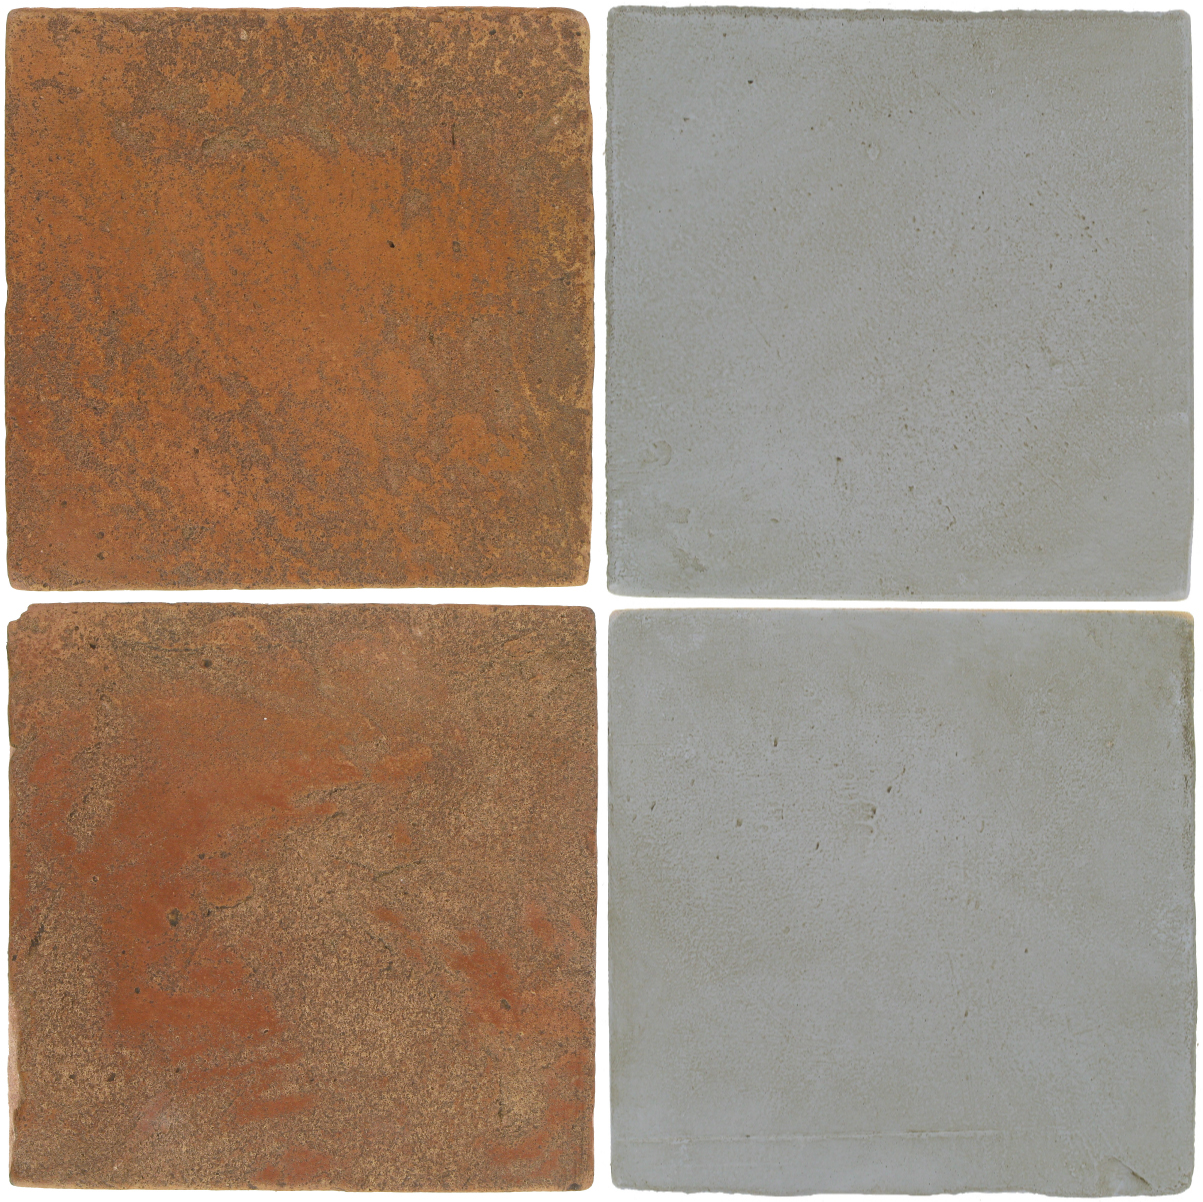 Pedralbes Antique Terracotta  2 Color Combinations  VTG-PSTR Traditional + OHS-PGOG Oyster Grey